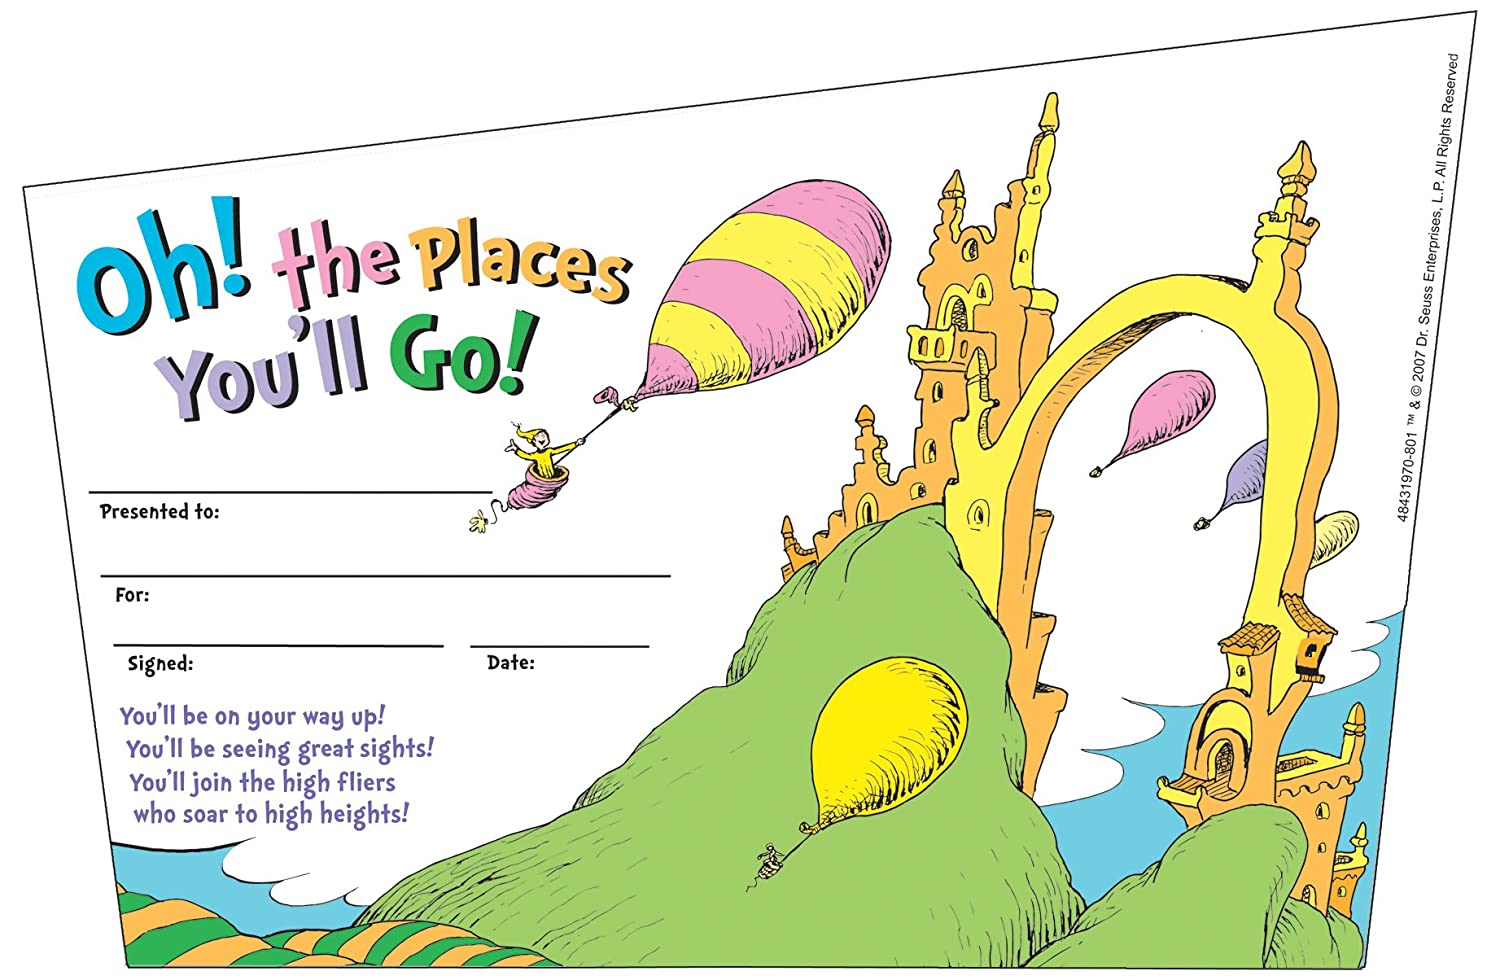 photograph relating to Oh the Places You'll Go Printable known as Eureka Again towards College Dr. Seuss, Oh, The Destinations Youll Transfer Attractiveness Awards for Small children, 36laptop or computer. 8.5 W x 5.5 H